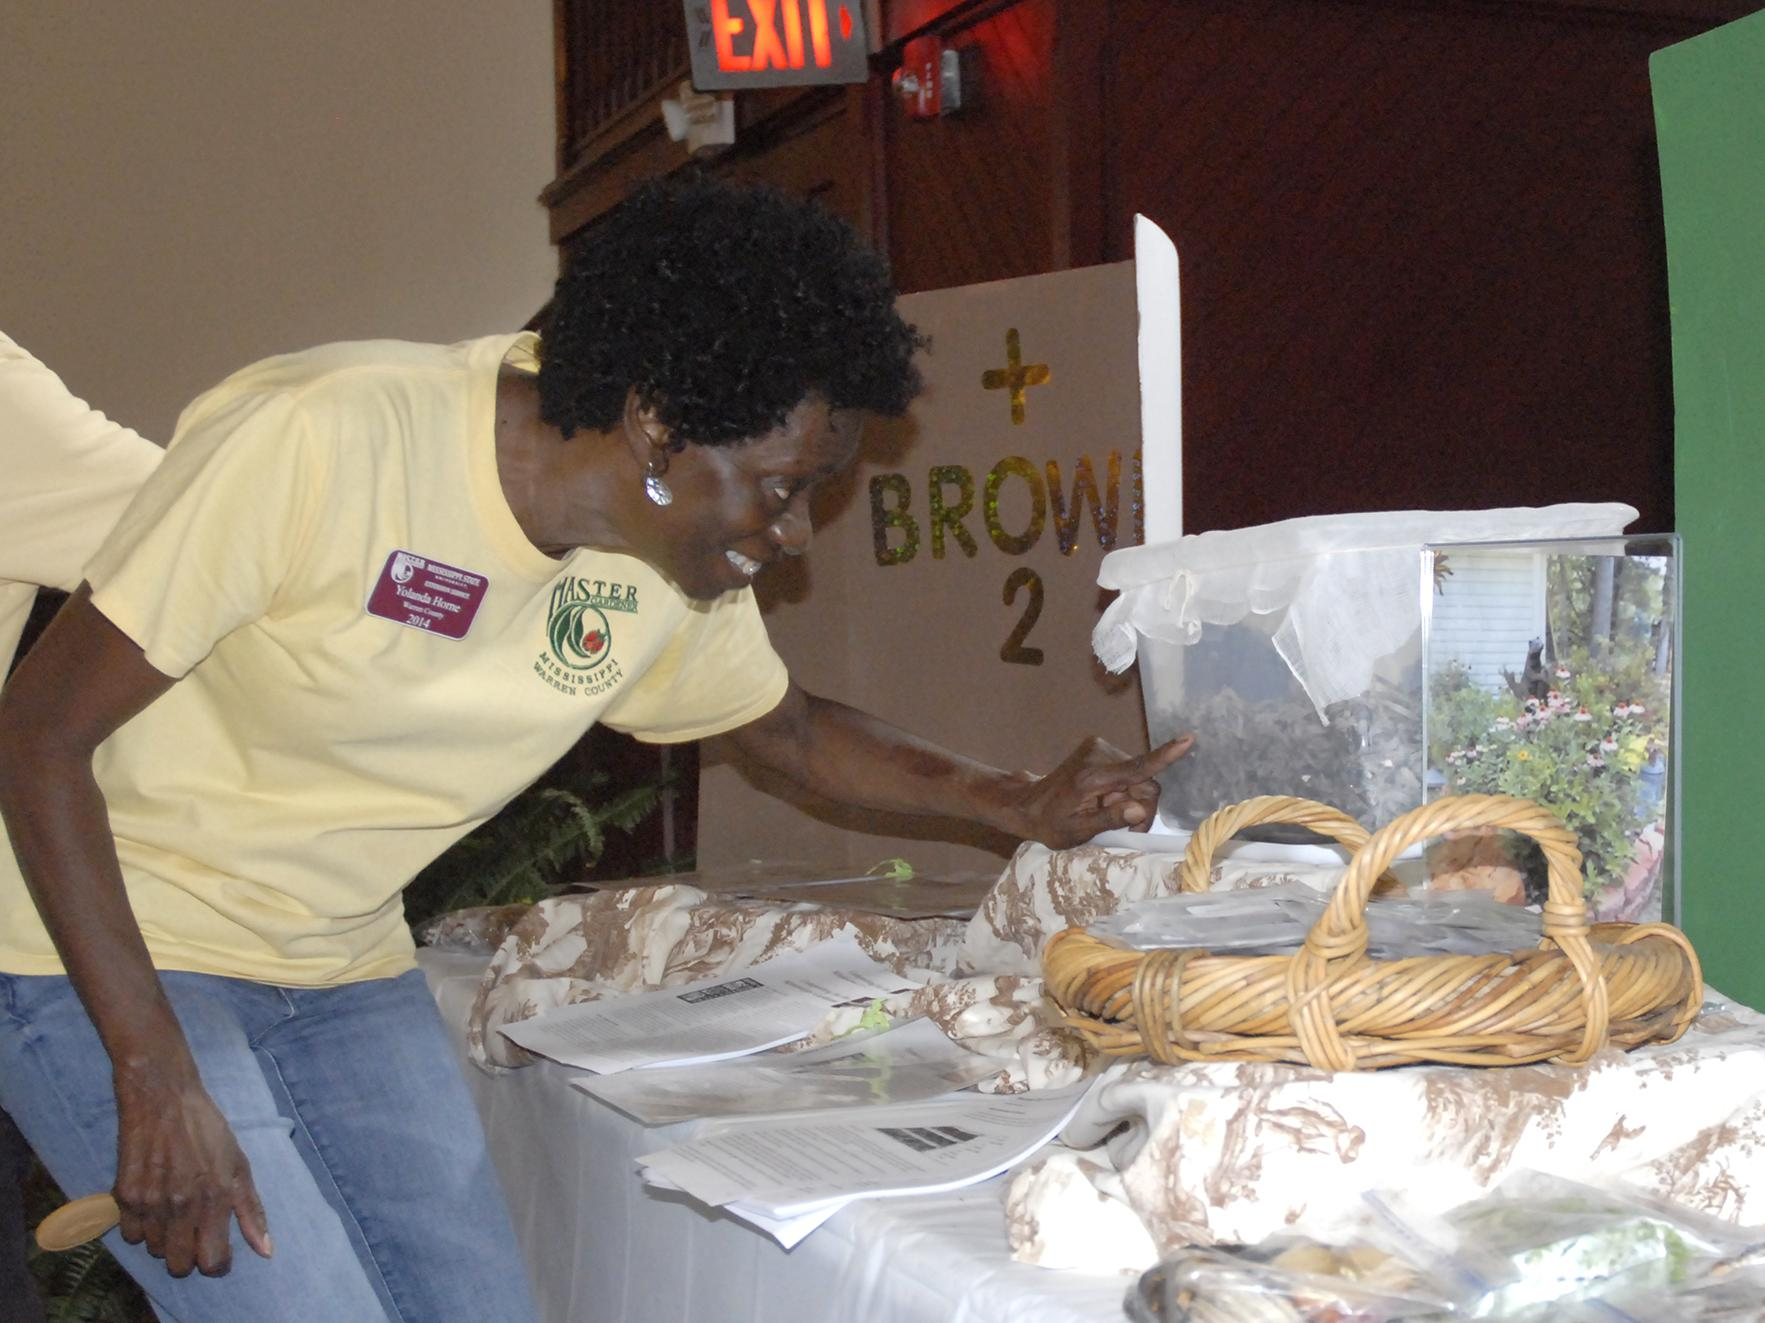 Warren County Master Gardener Yolanda Horne checks on worms living in a plastic bin on June 13, 2017. The worms were part of an exhibit on composting at the Know Your Roots: Grow Your Business workshop in Vicksburg, Mississippi. (Photo by MSU Extension Service/Bonnie Coblentz)